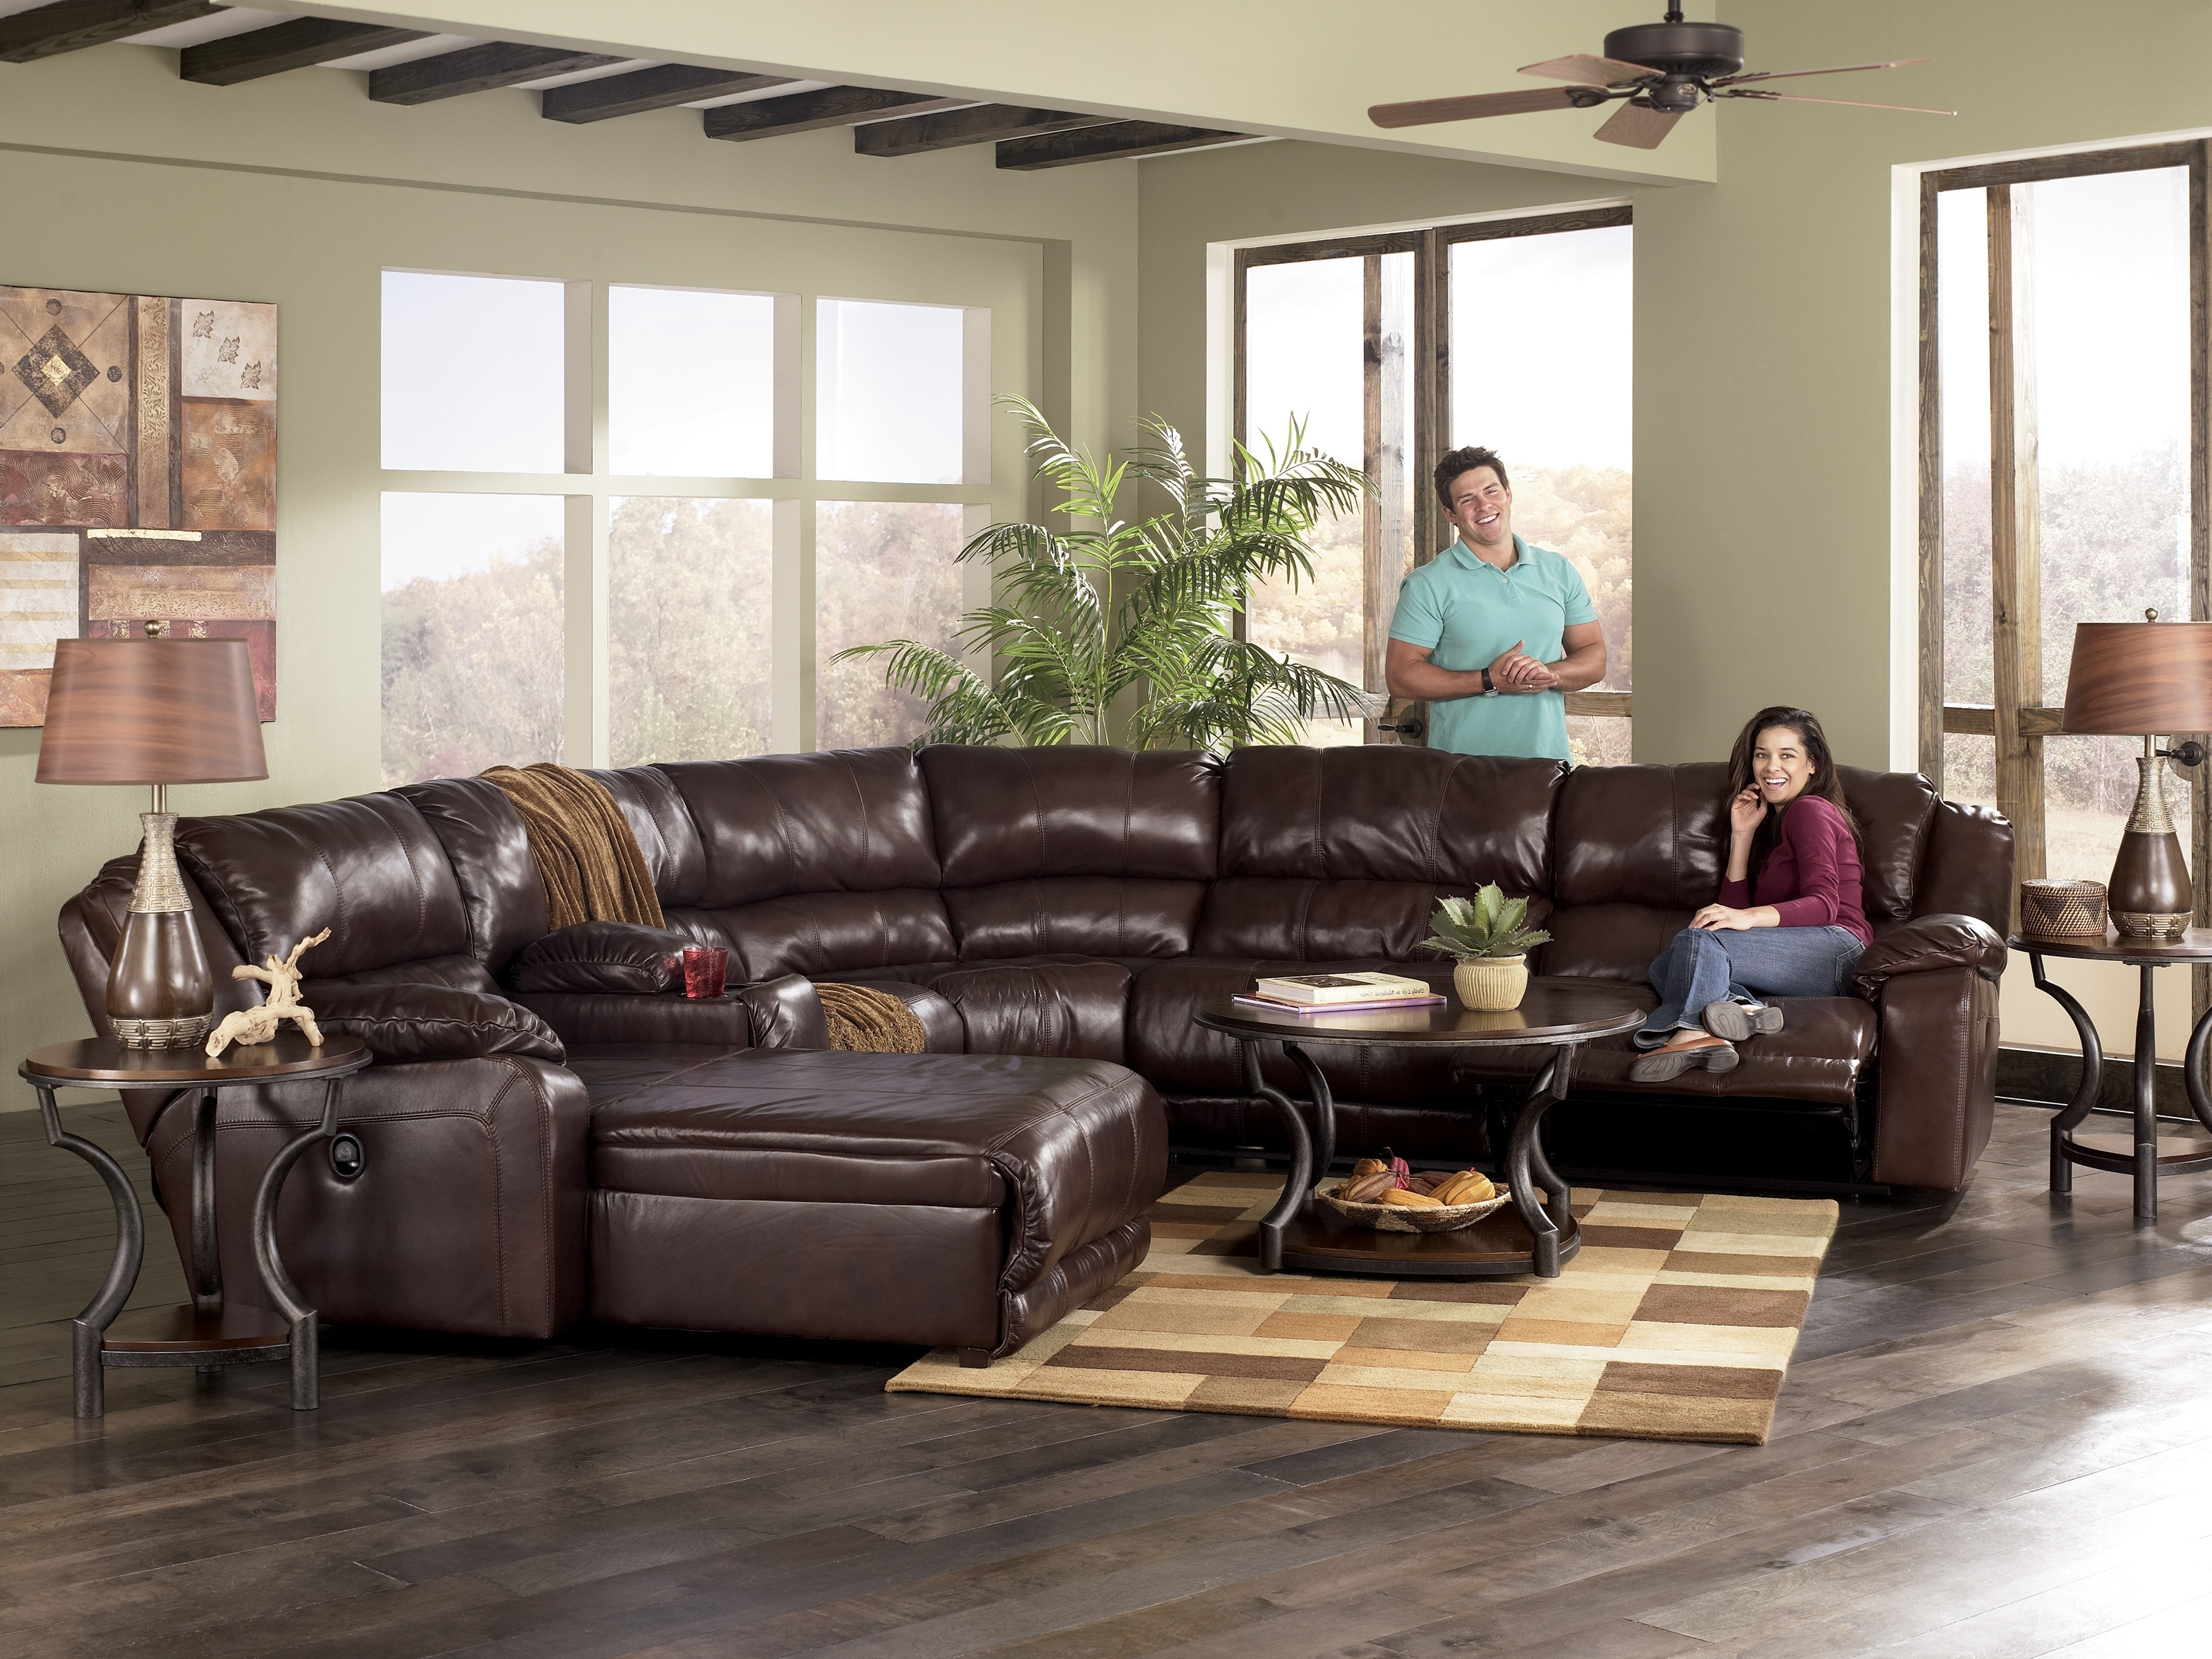 2017 Sectional Sofas Leather Elegant Delighful Couches With Chaise New Intended For Ontario Sectional Sofas (View 1 of 15)